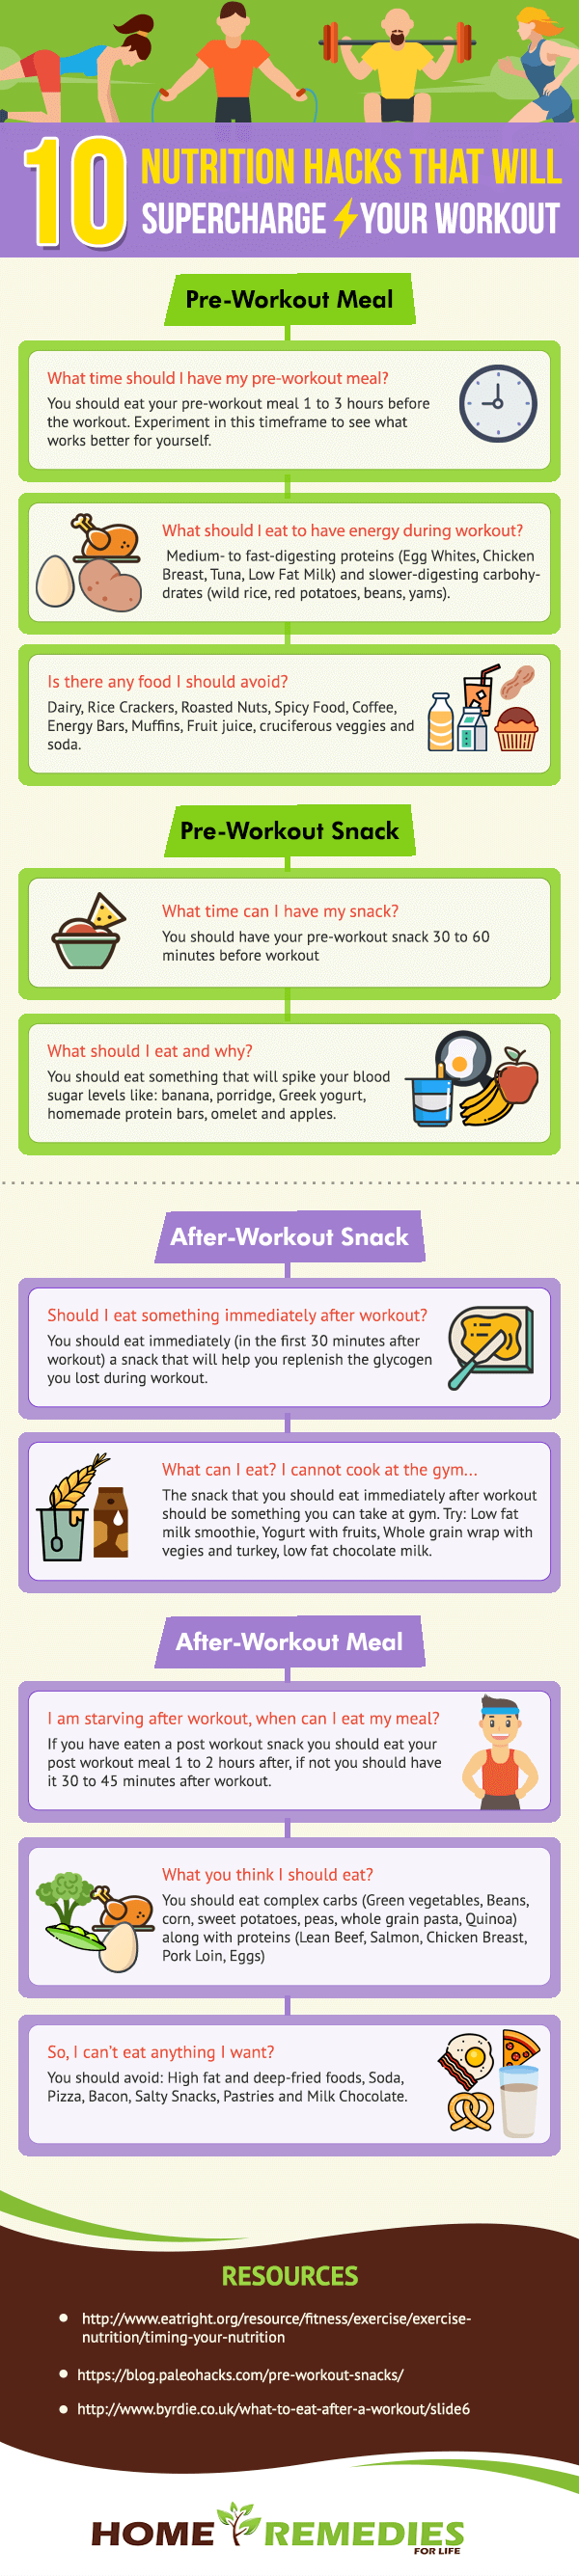 10 Nutrition Hacks That Will Supercharge Your Workout Infographic